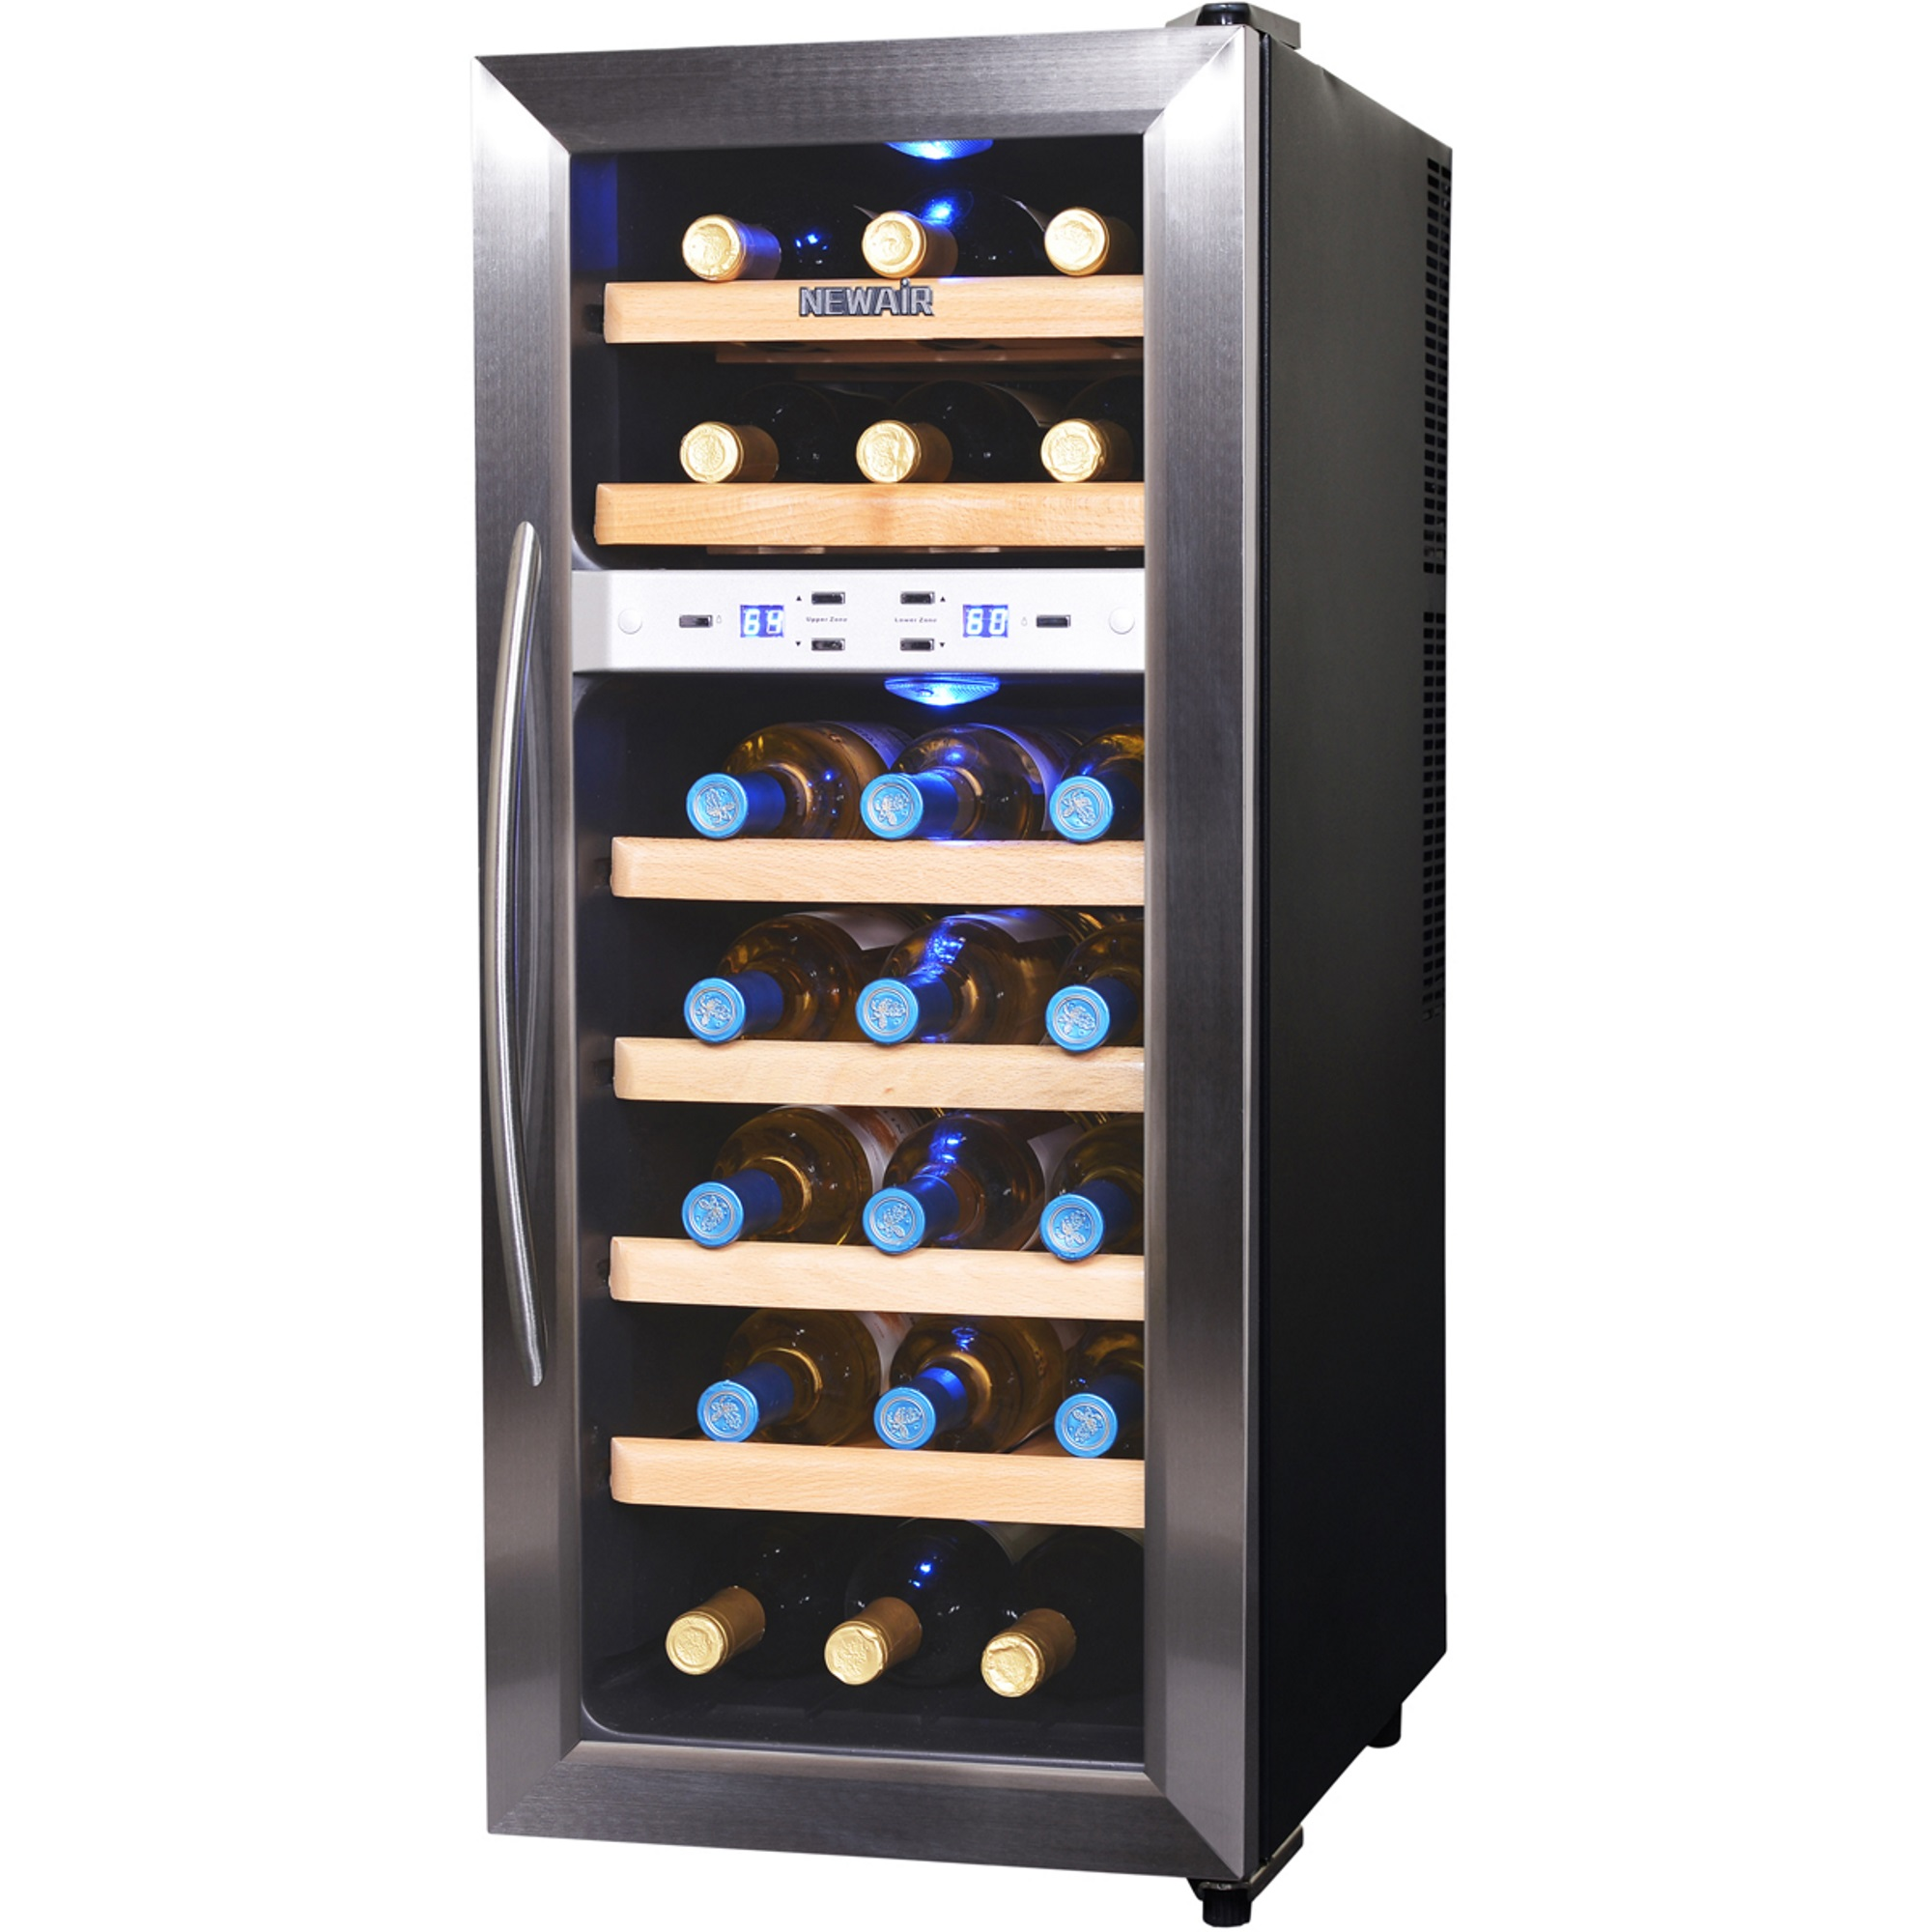 NewAir 21-Bottle Thermoelectric Wine Refrigerator, Stainless Steel and Black